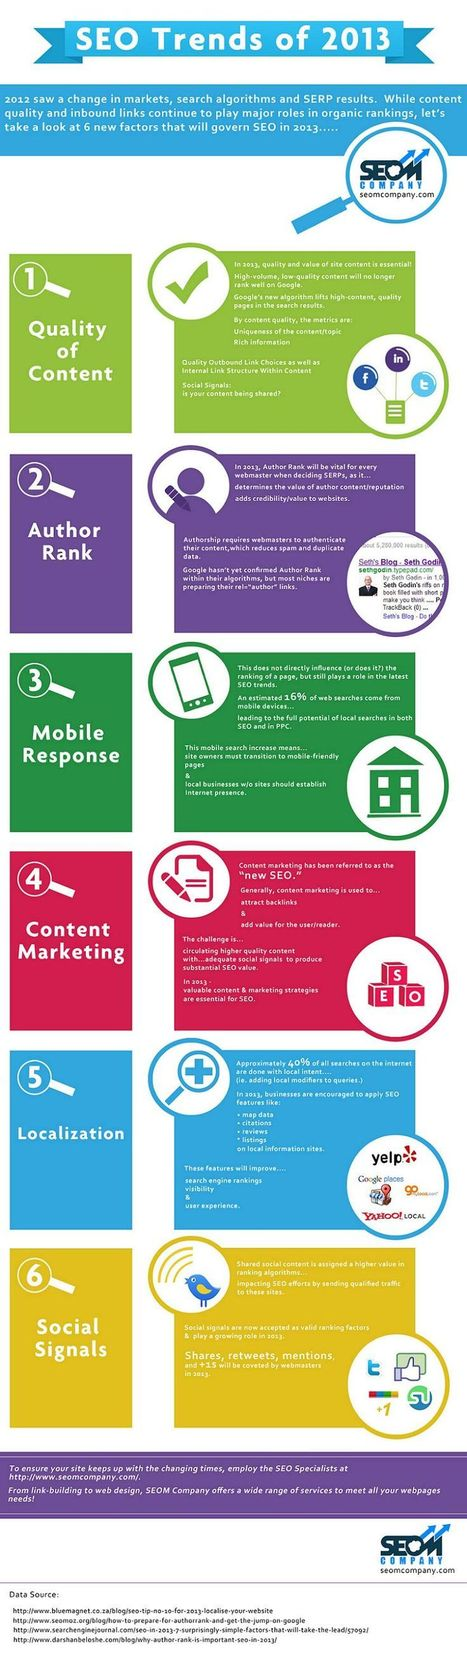 SEO Trends of 2013 {Infographic} | Time to Learn | Scoop.it